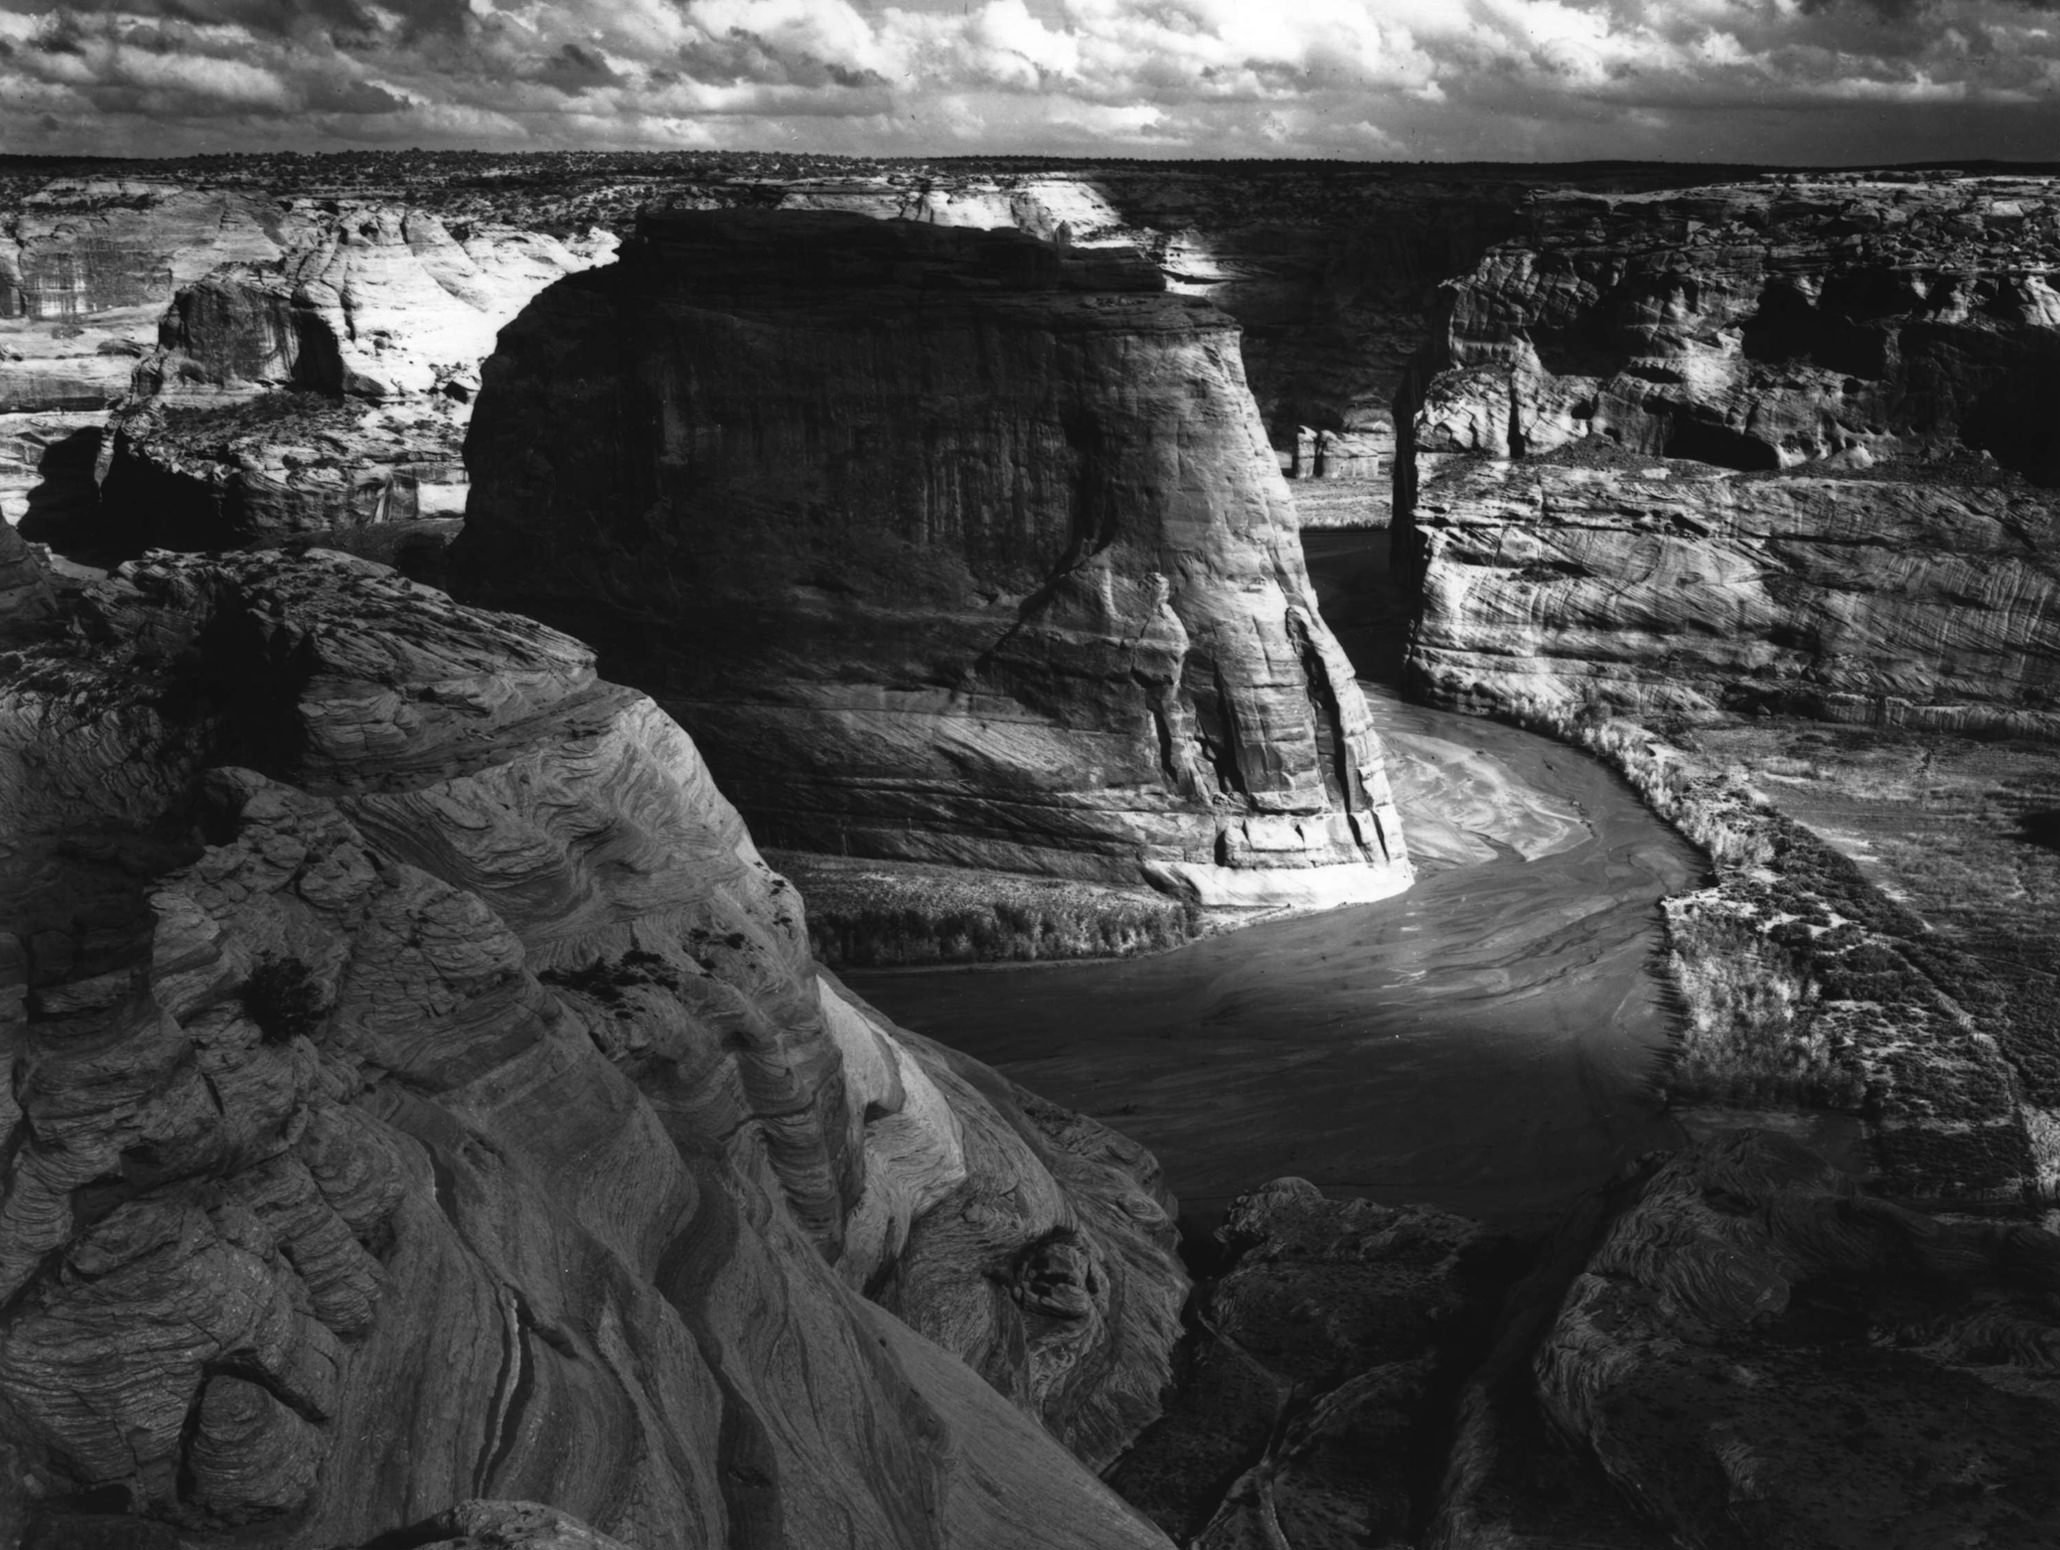 Ansel Adams Canyon De Chelly National Monument Arizona 1942